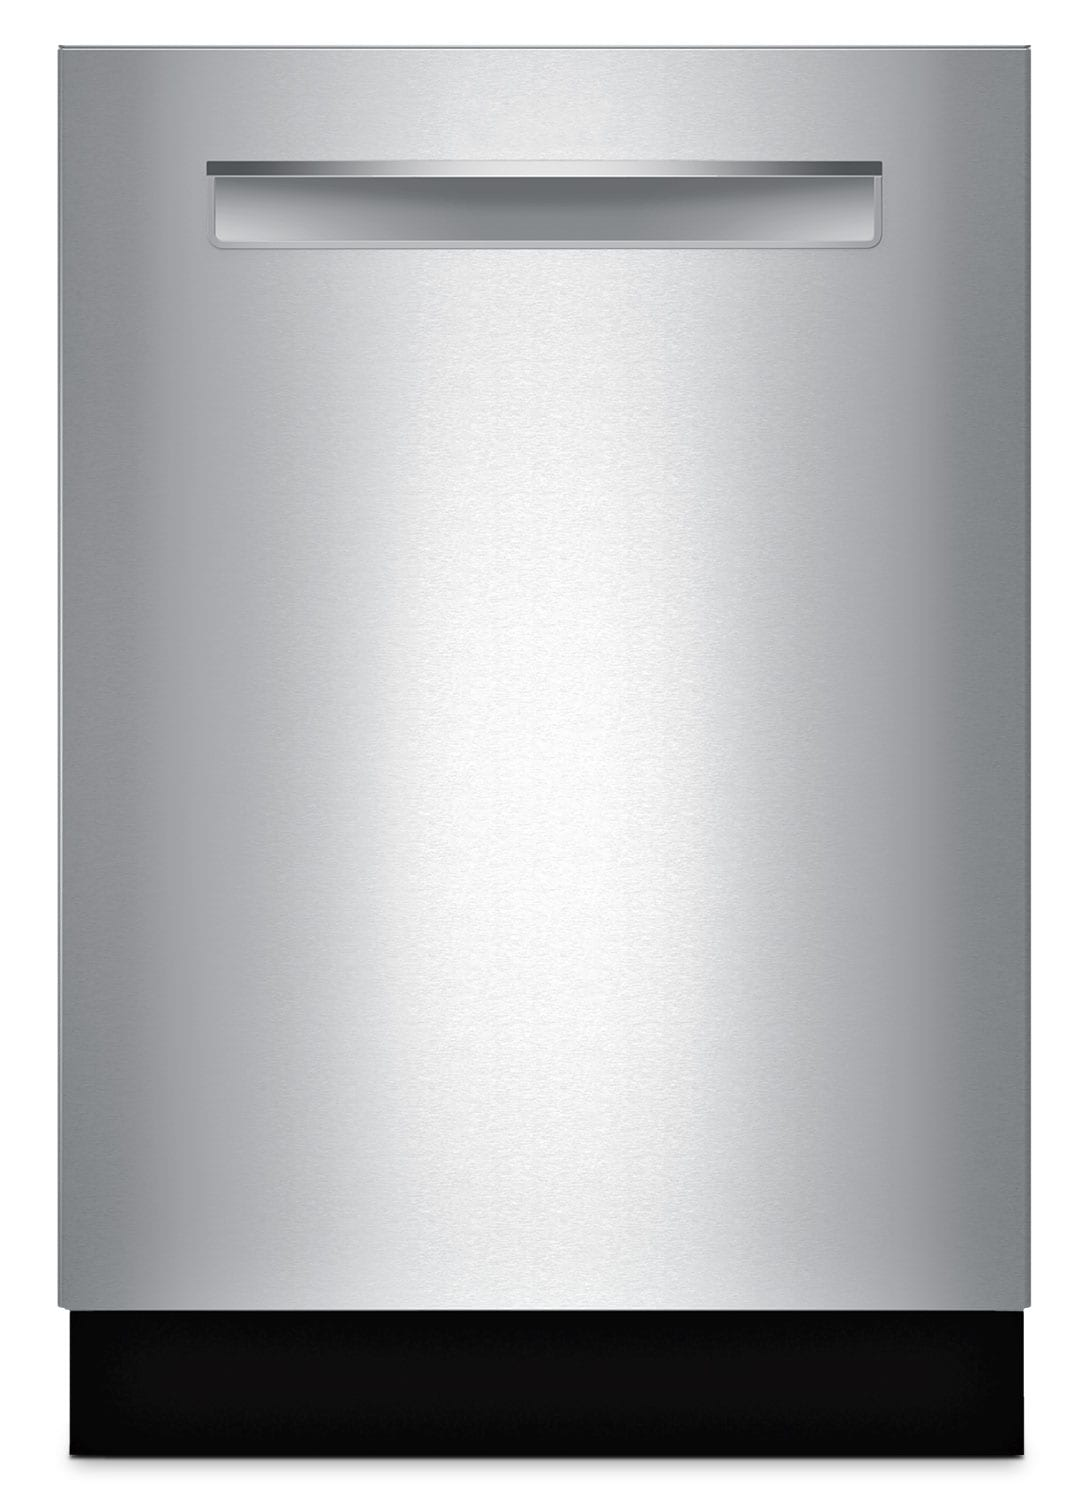 "Clean-Up - Bosch 500 Series 24"" Flush Handle Dishwasher - Stainless Steel"